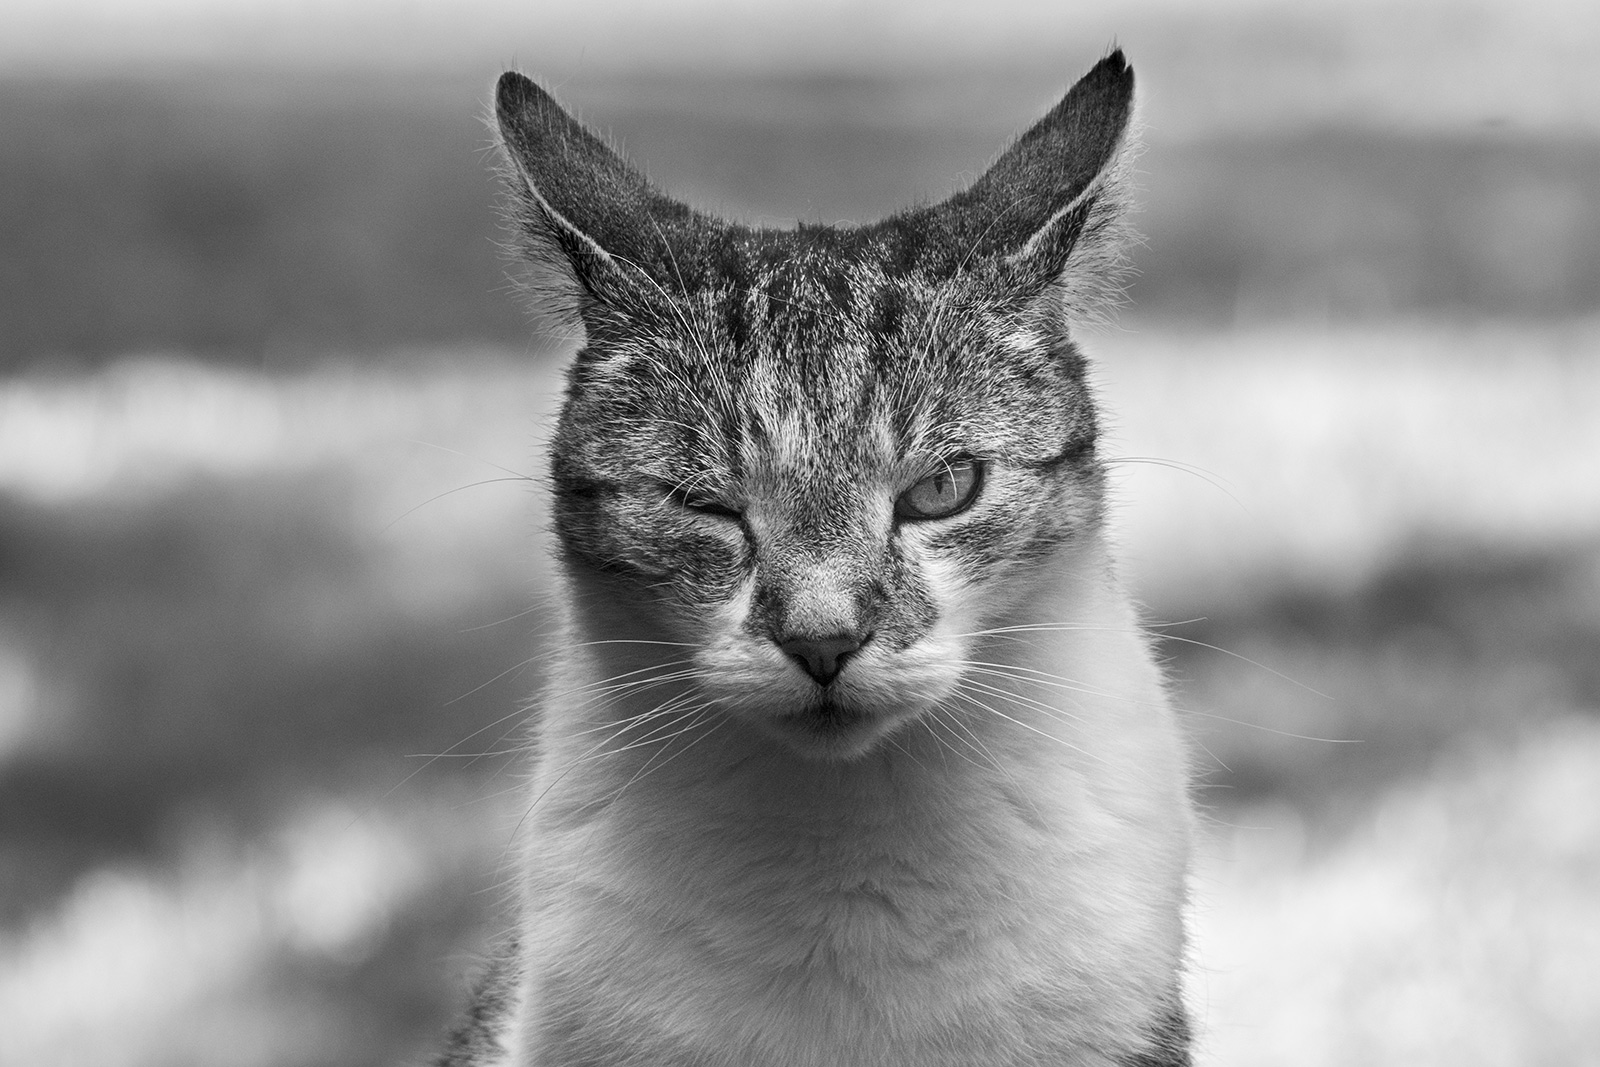 Tabby and white cat looking at viewer and winking ©P. Maton 2019 eyeteeth.net